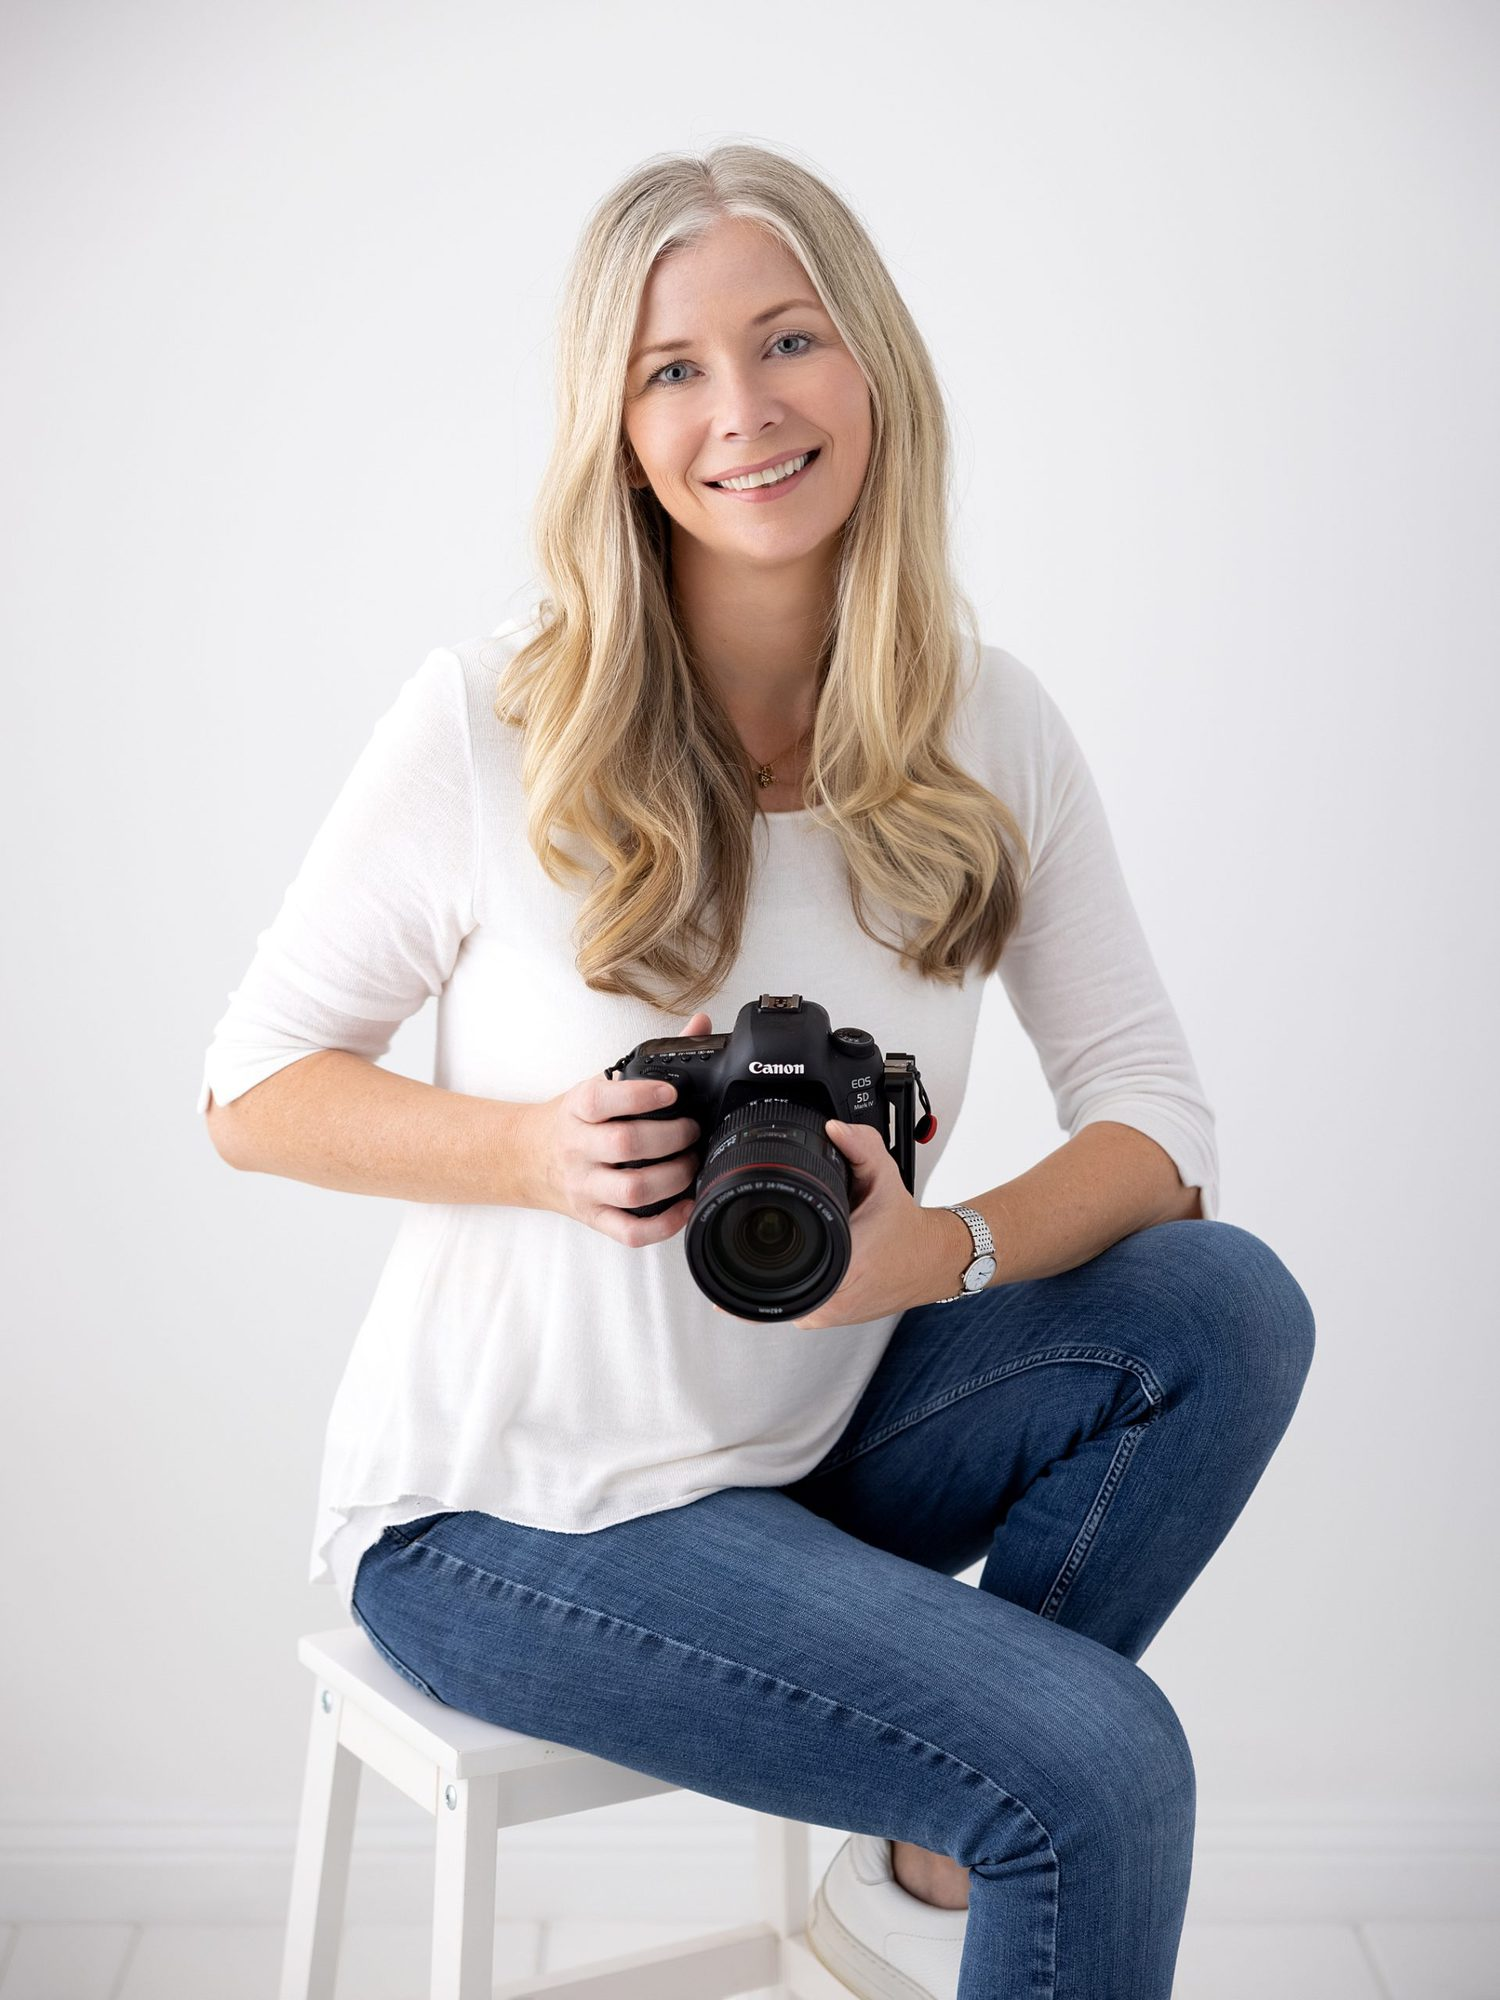 Alison McKenny the Photographer in a white top and jeans against a white studio backdrop